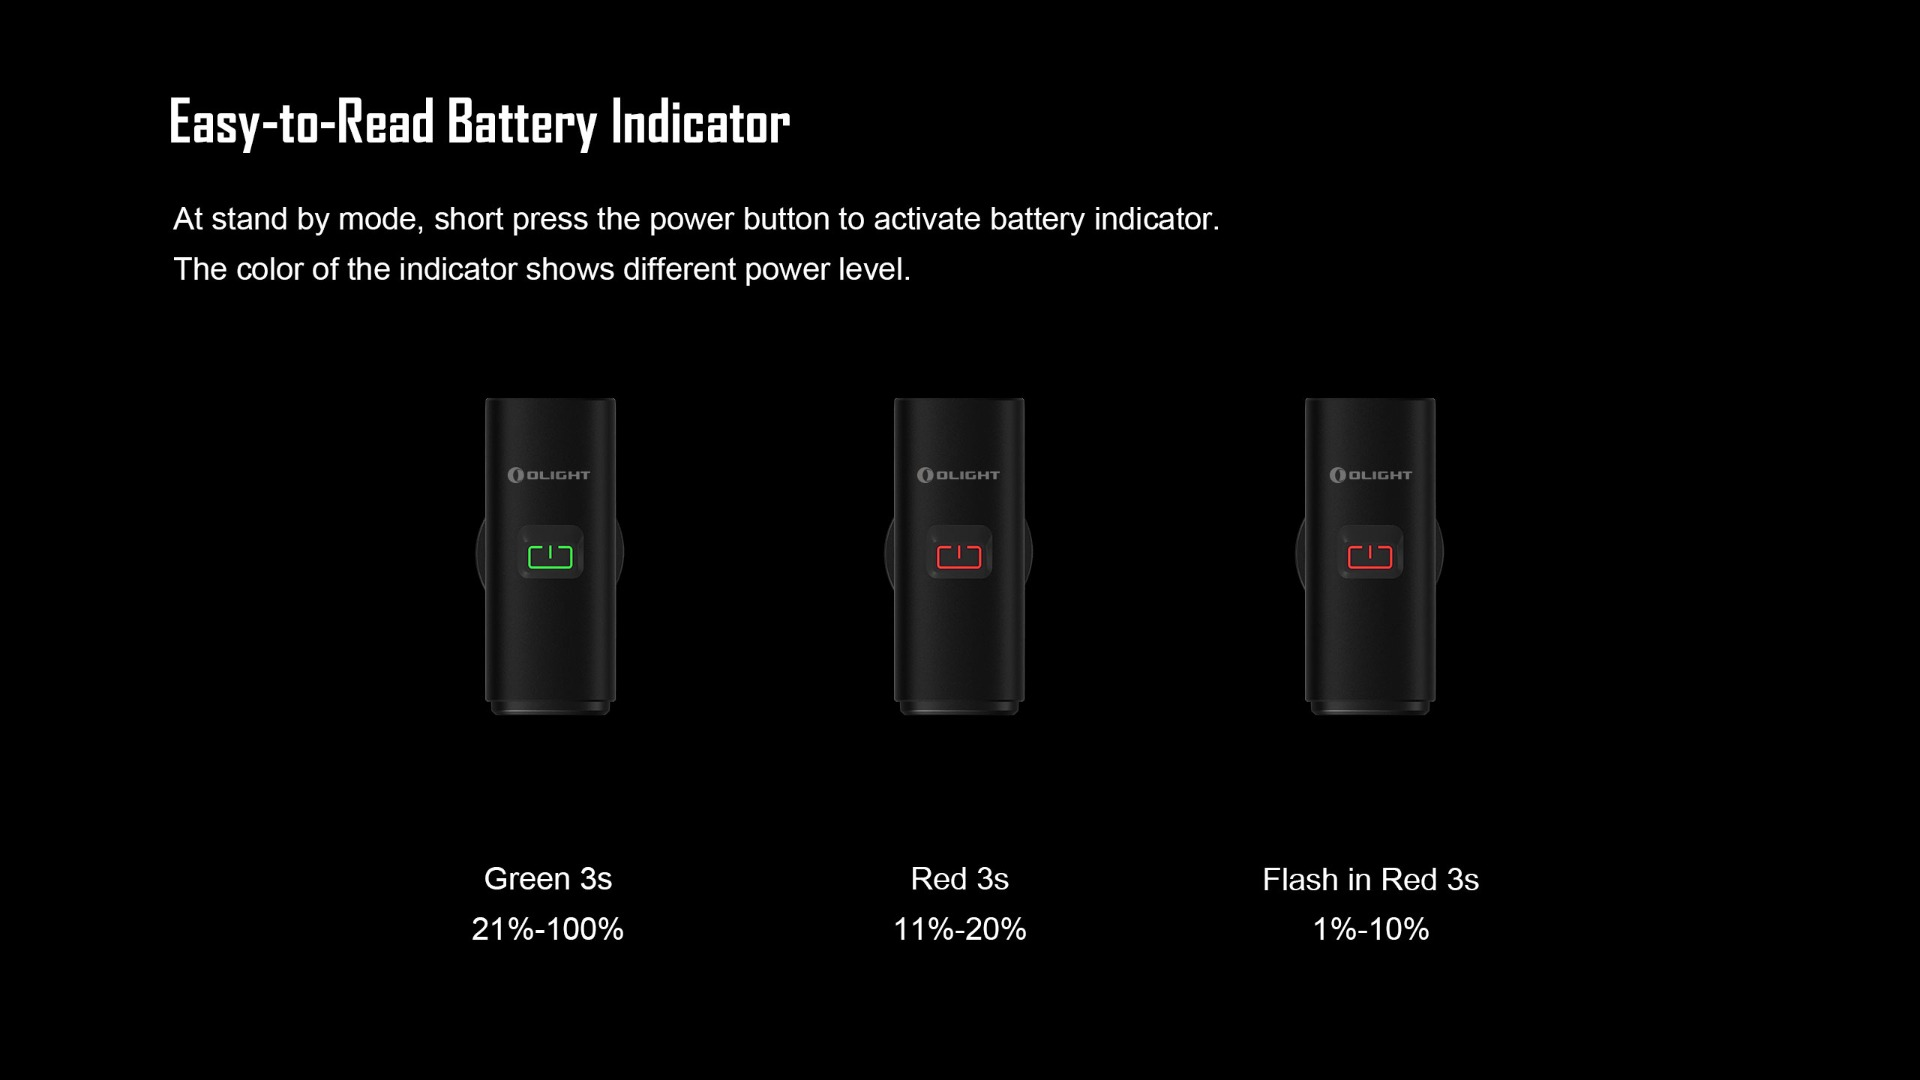 Bicycle light for easy checking of battery level